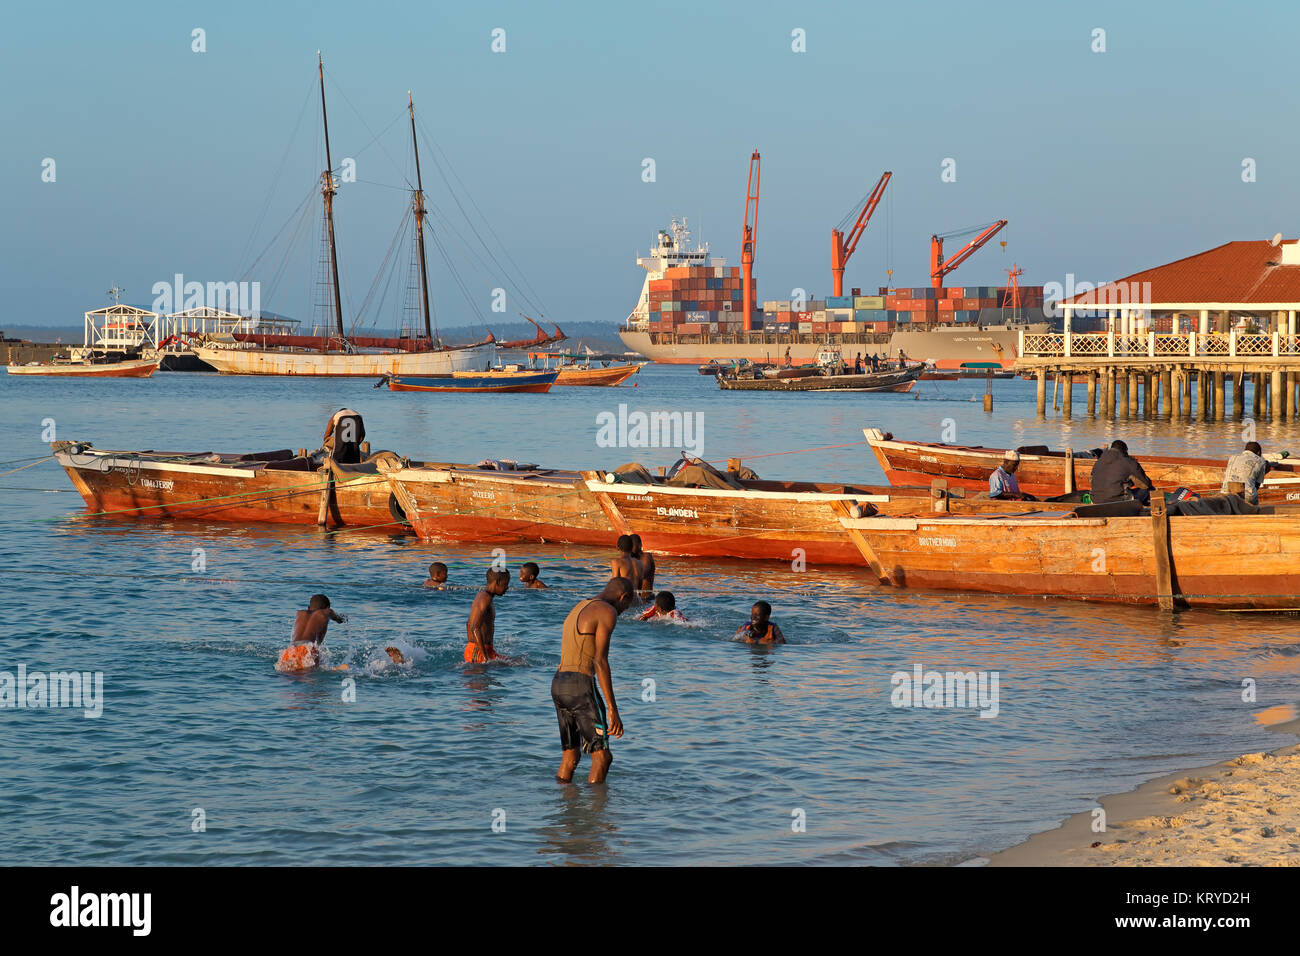 STONE TOWN, ZANZIBAR, TANZANIA - OCTOBER 29, 2014: Boats anchored and children playing in the shallow water of the - Stock Image